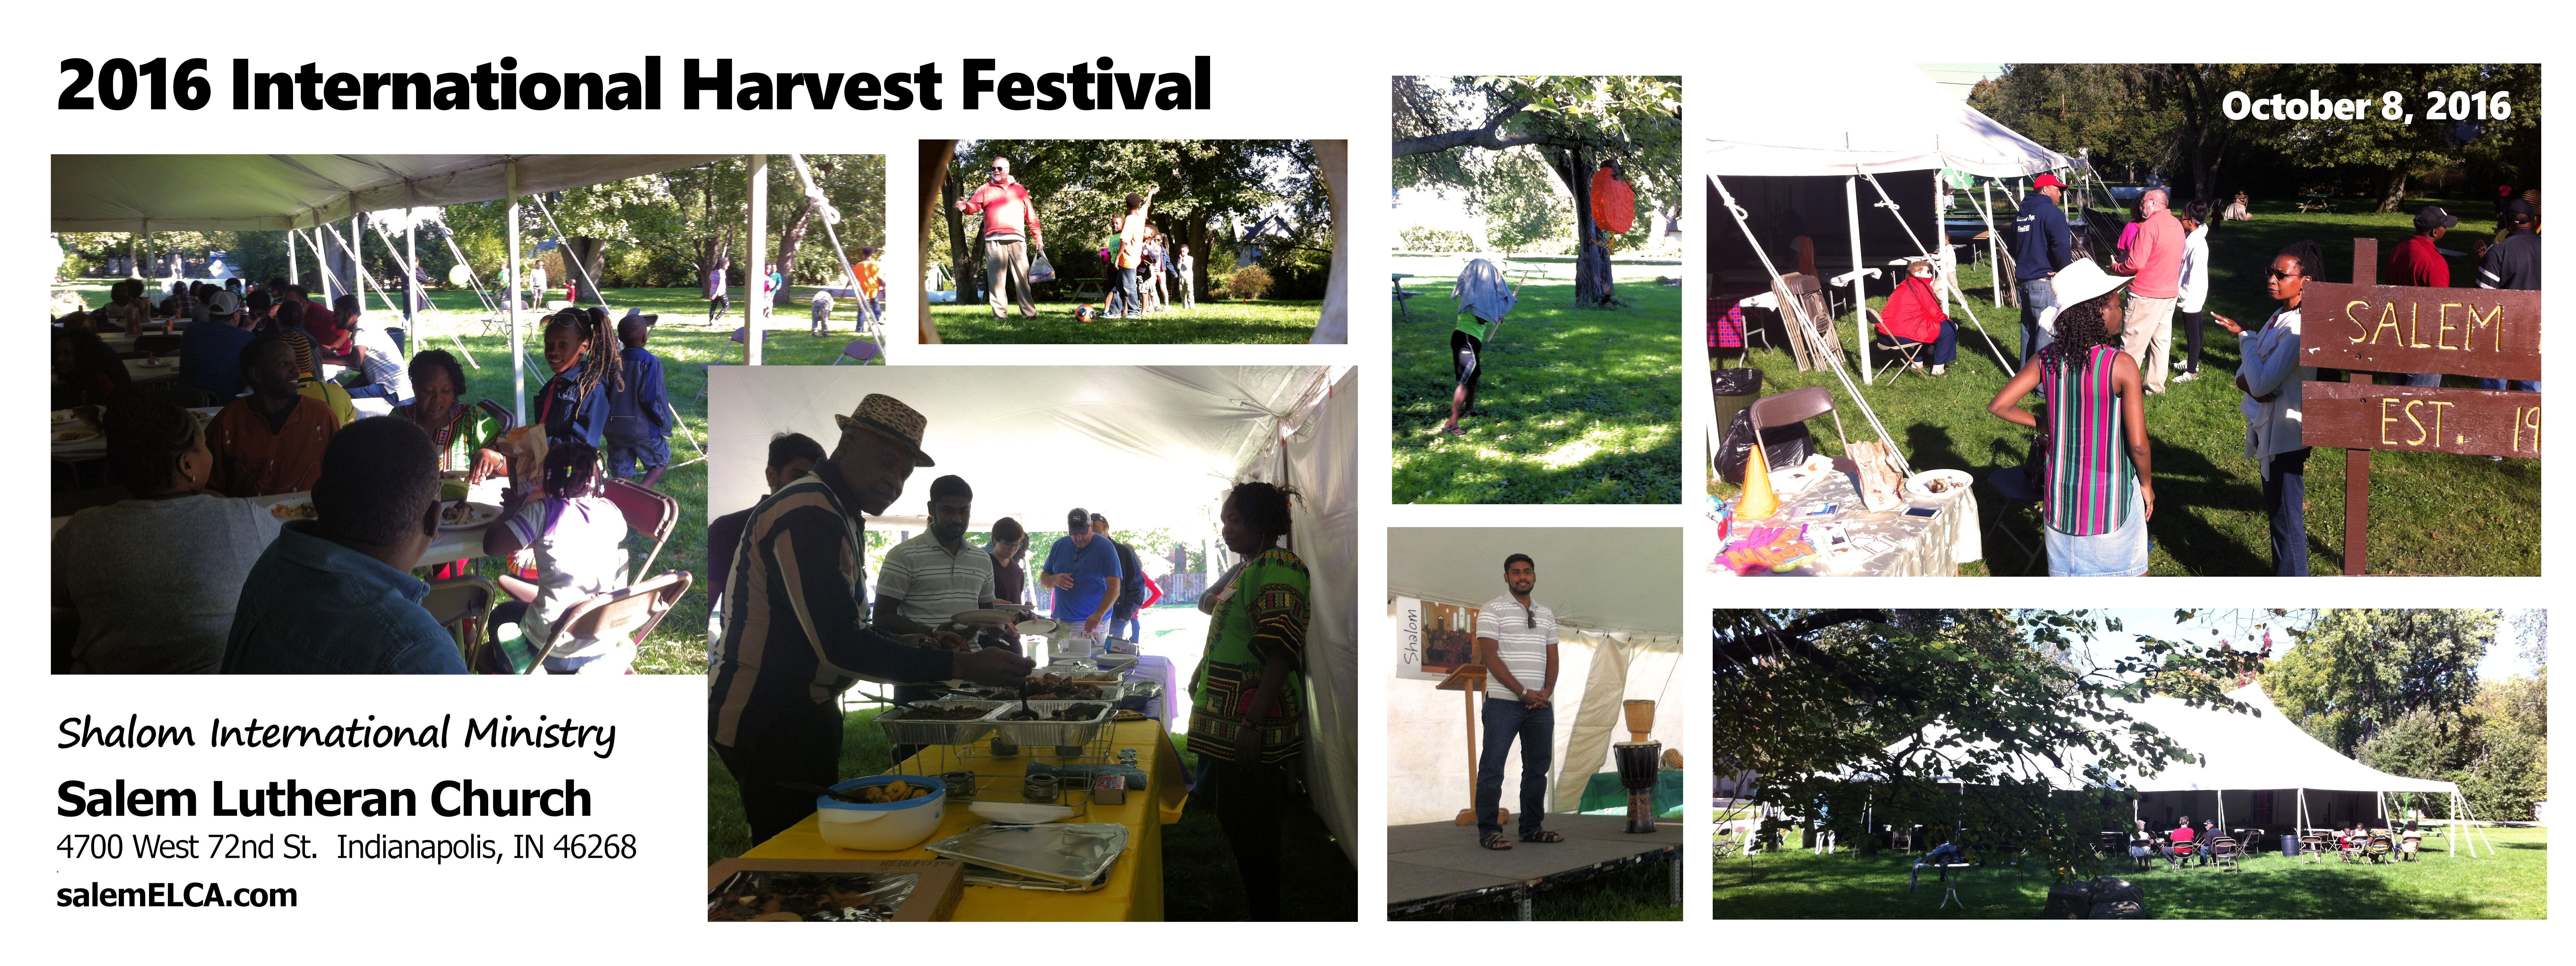 Images from the 2016 International Harvest Festival.